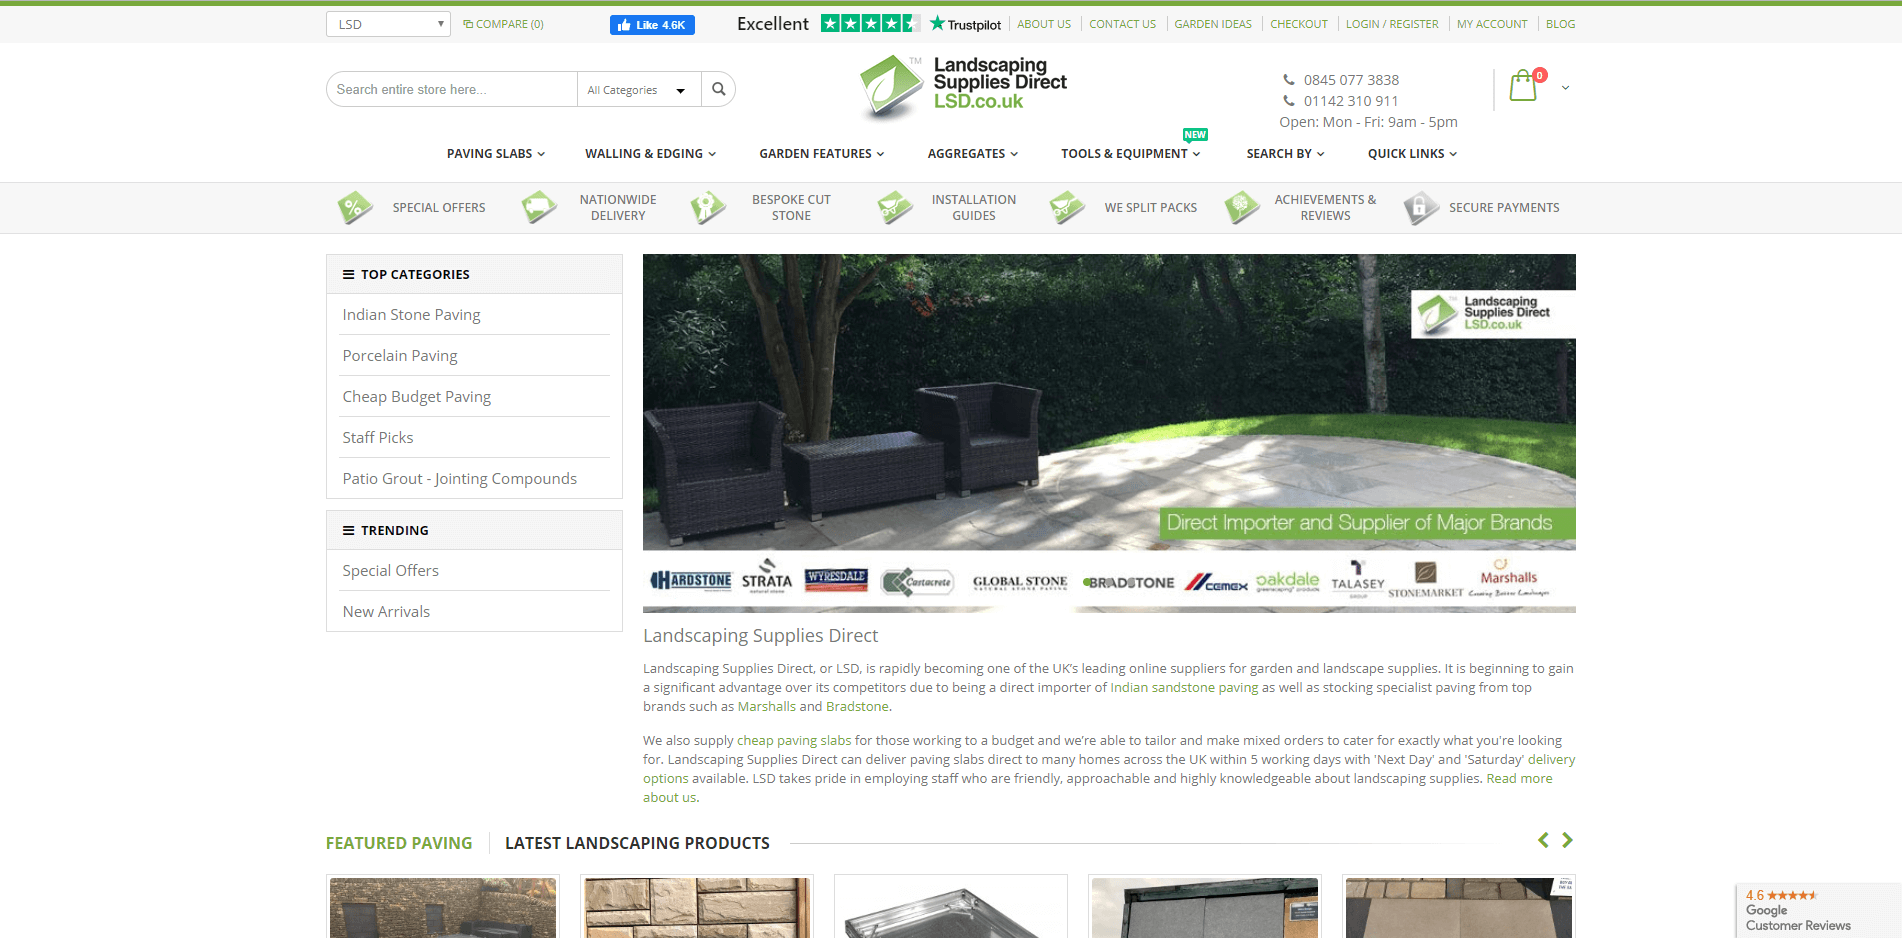 Landscaping supplies direct